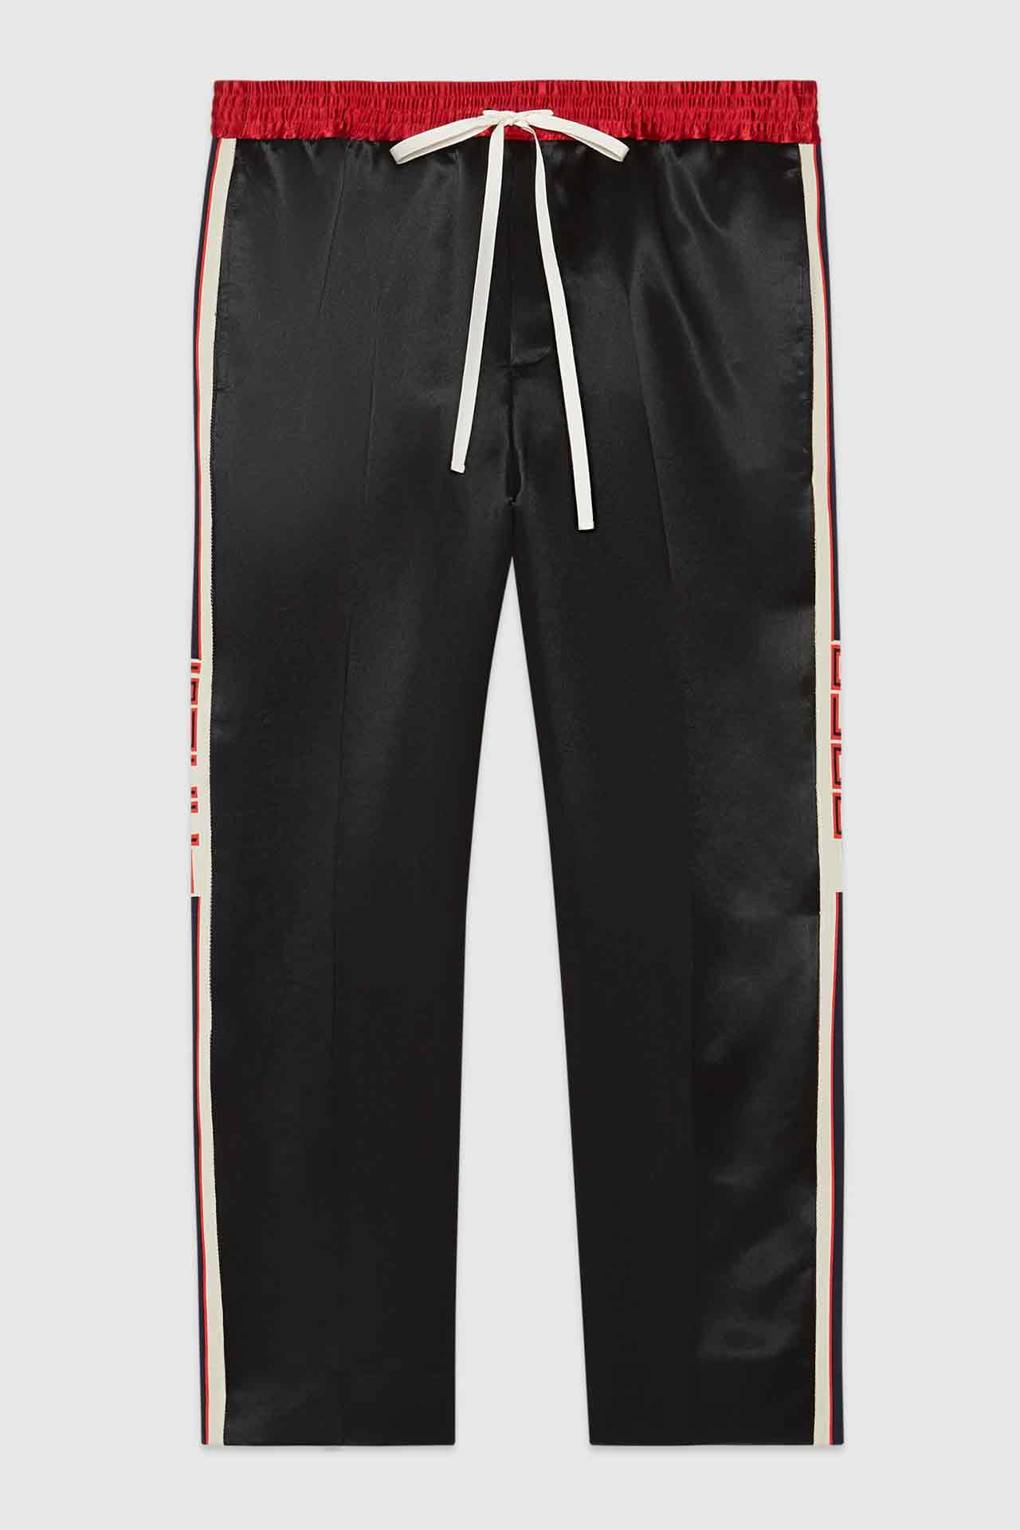 cc29f784d495 The best sweatpants you need to own.